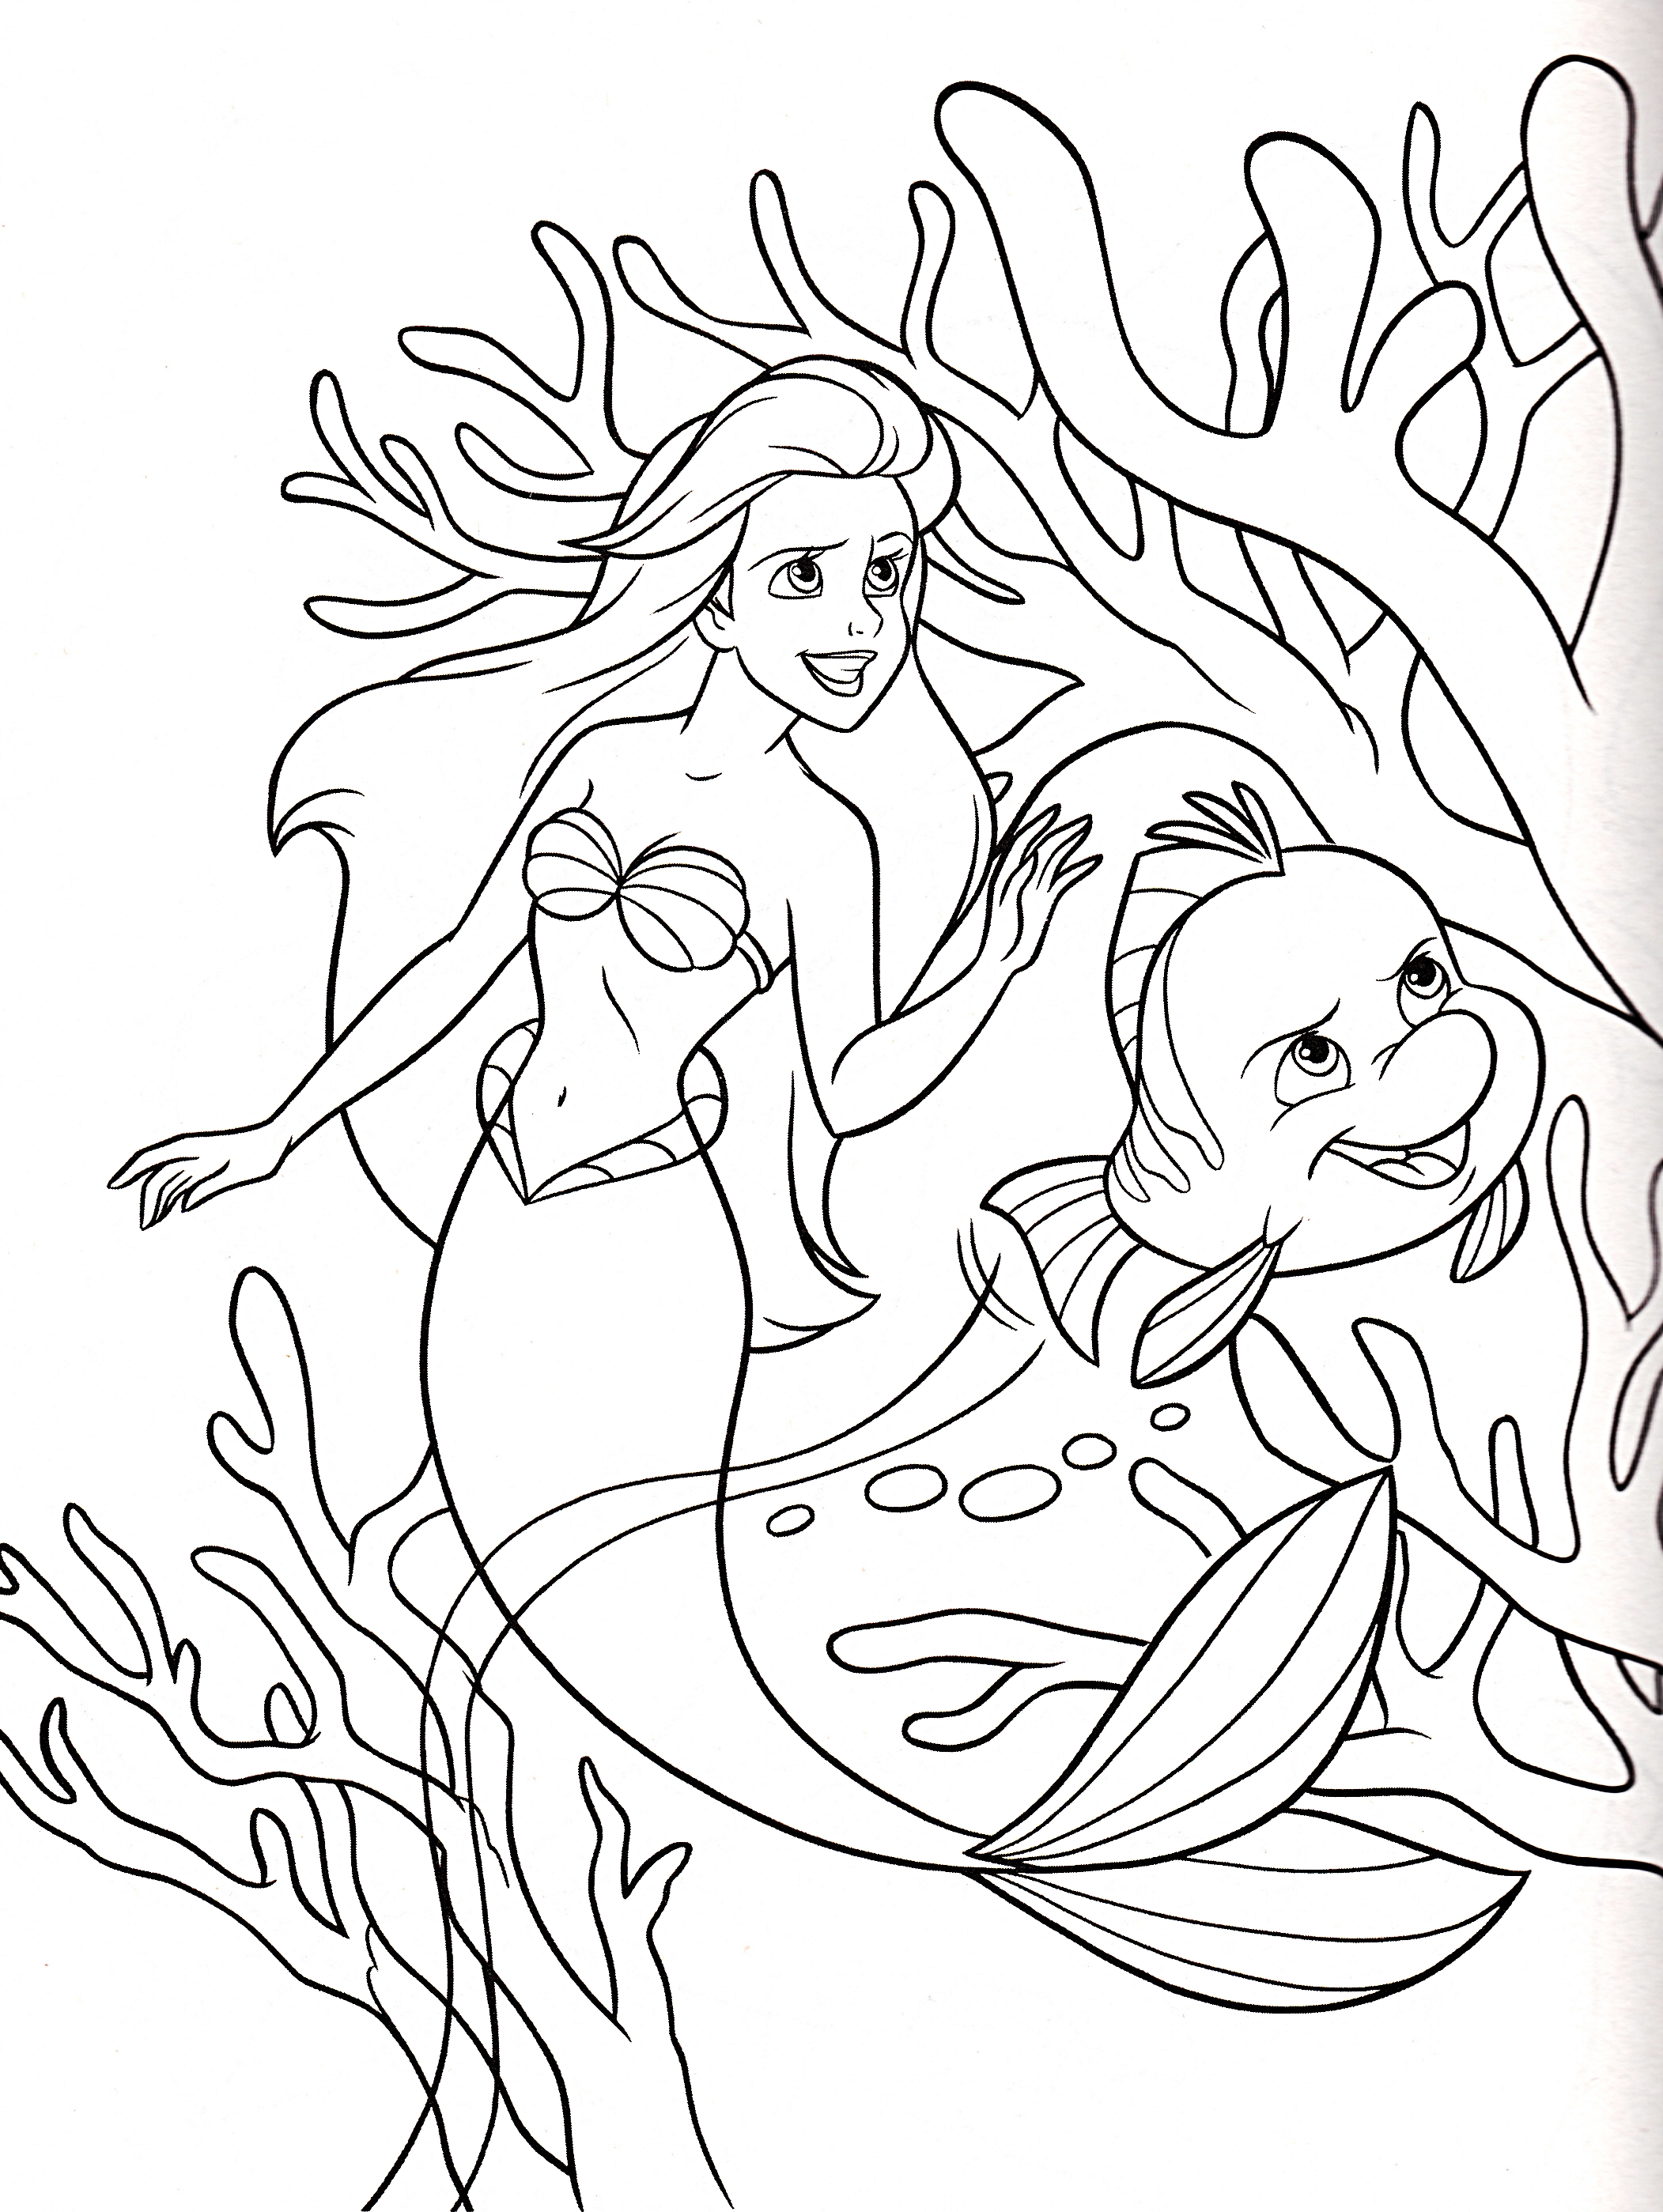 Disney Princess Coloring Pages 72 Free Printable Coloring Pages